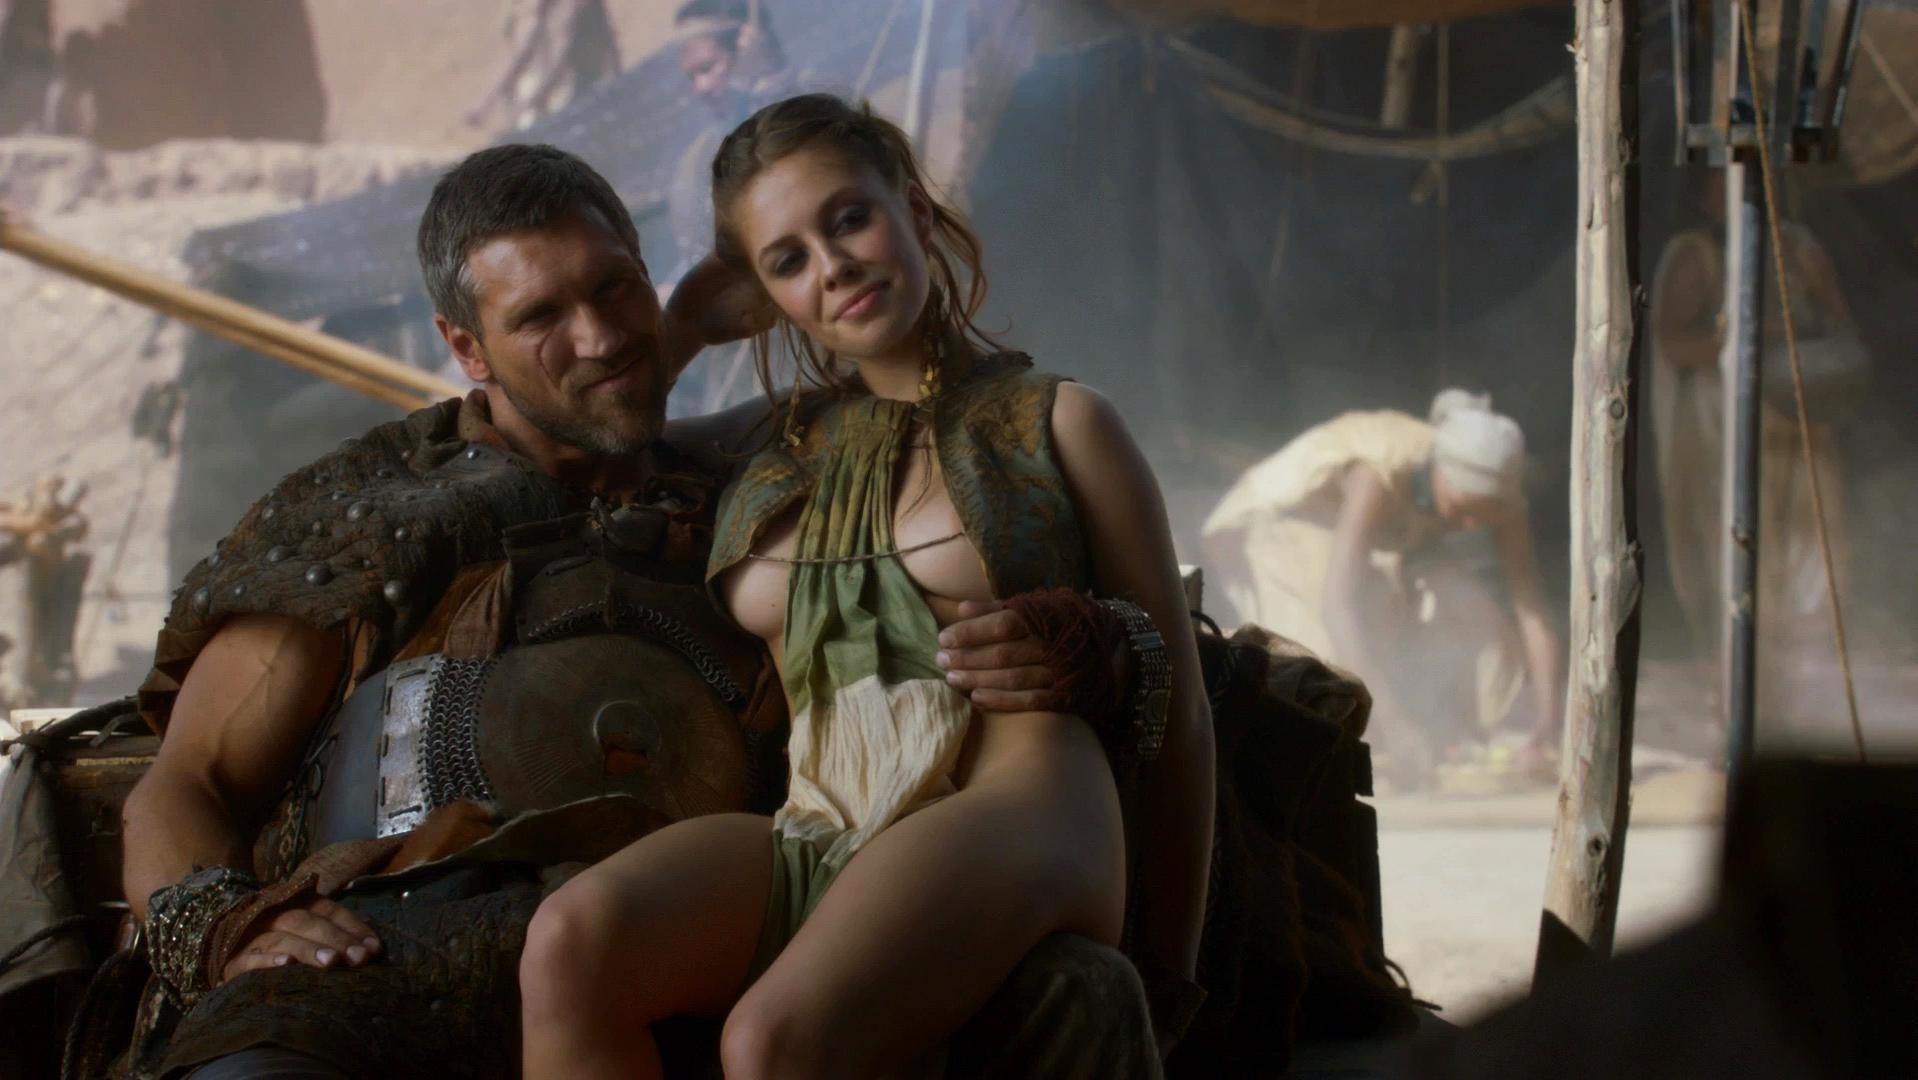 Talitha Luke-Eardley nude - Game of Thrones s03e08 (2013)